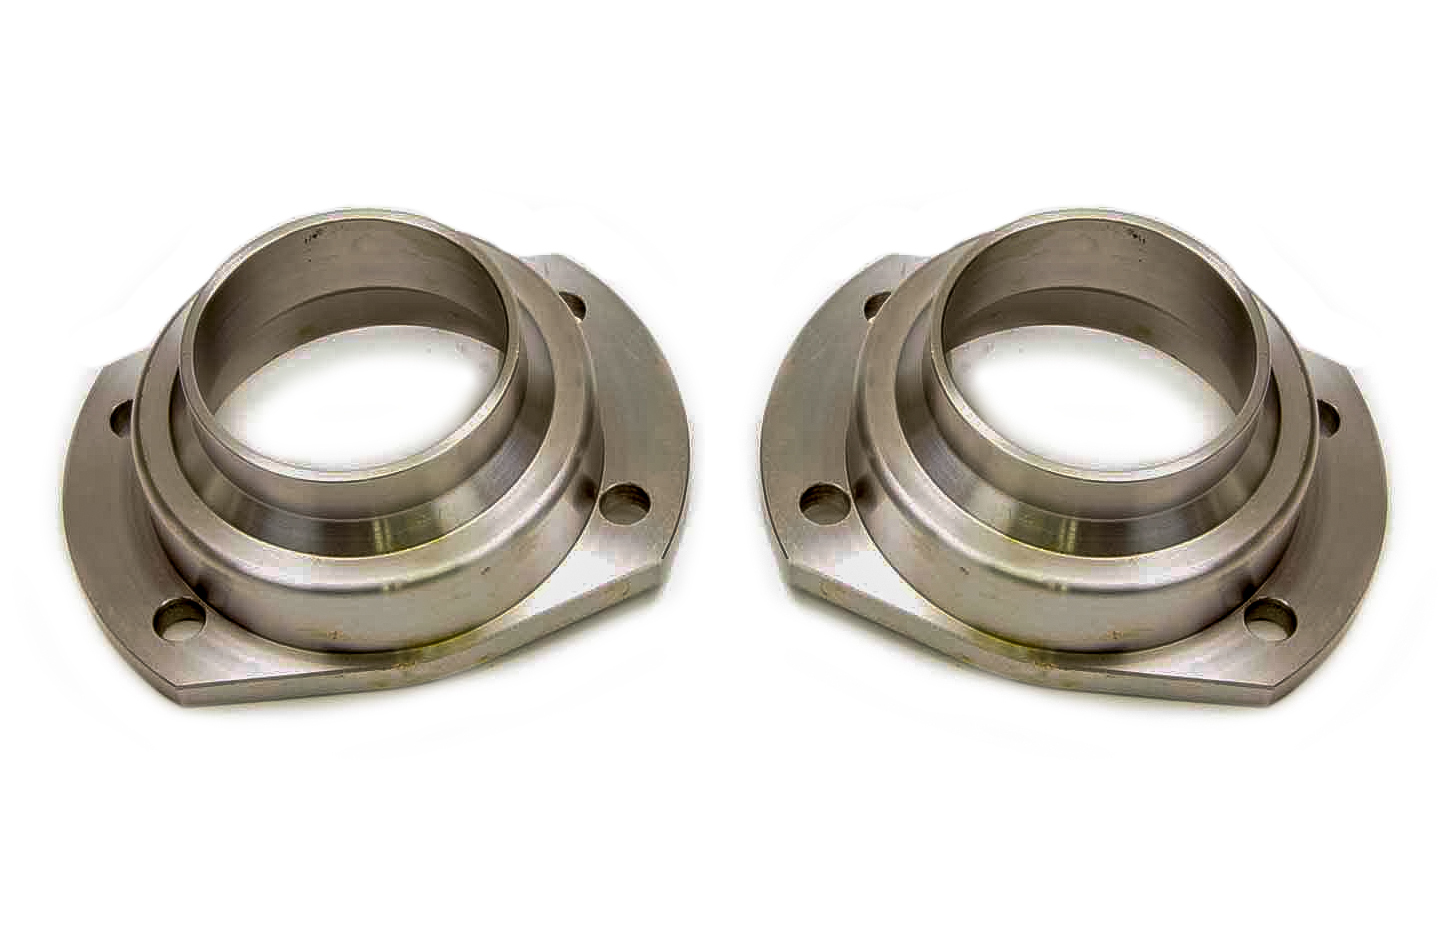 Currie Enterprises CE-2008TB Axle Housing End, Weld-On, 3.150 in Bearing Bore, Steel, Natural, Late Big Ford, Pair